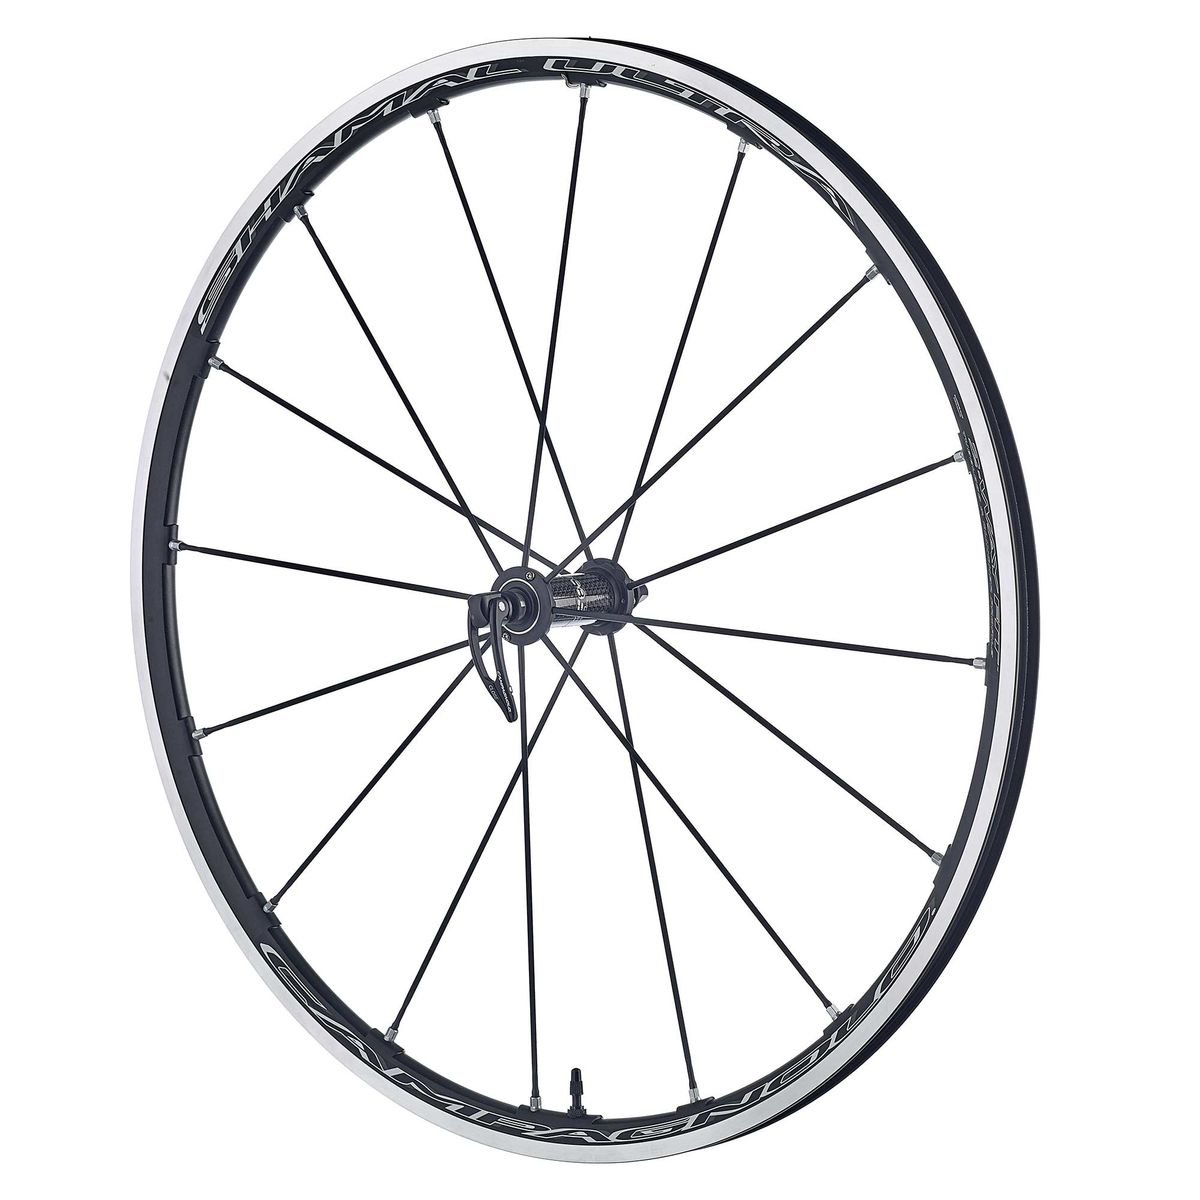 Shamal Ultra C17 2-Way Fit front wheel -2017-